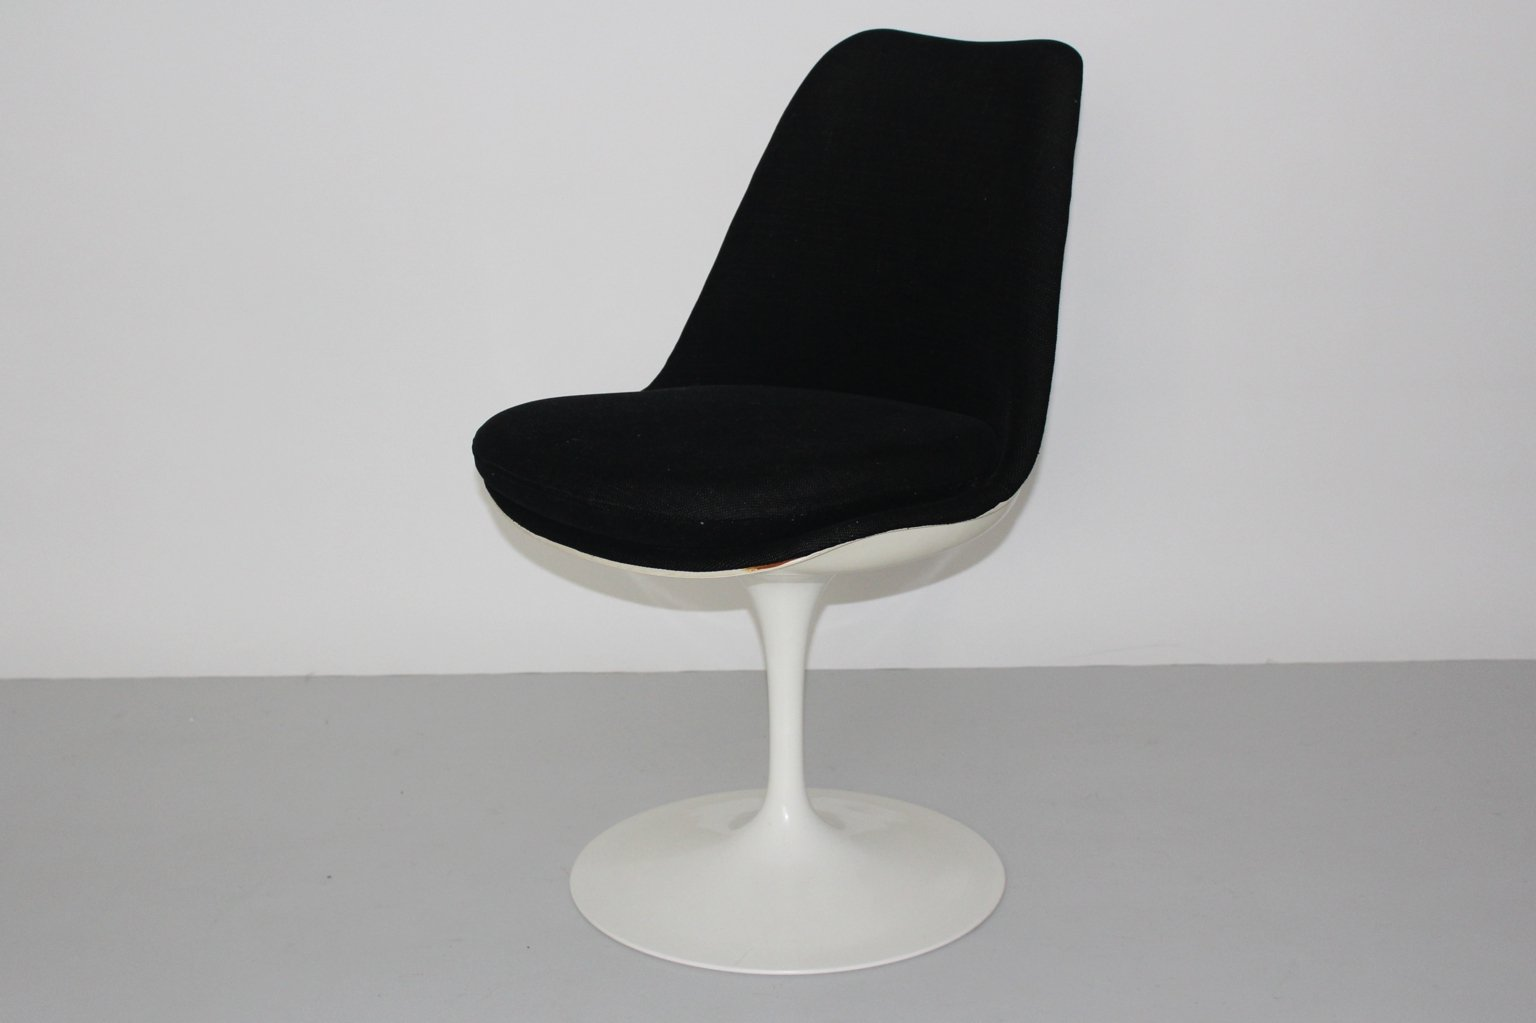 wei er tulip stuhl aus kunststoff von eero saarinen f r knoll 1970er bei pamono kaufen. Black Bedroom Furniture Sets. Home Design Ideas